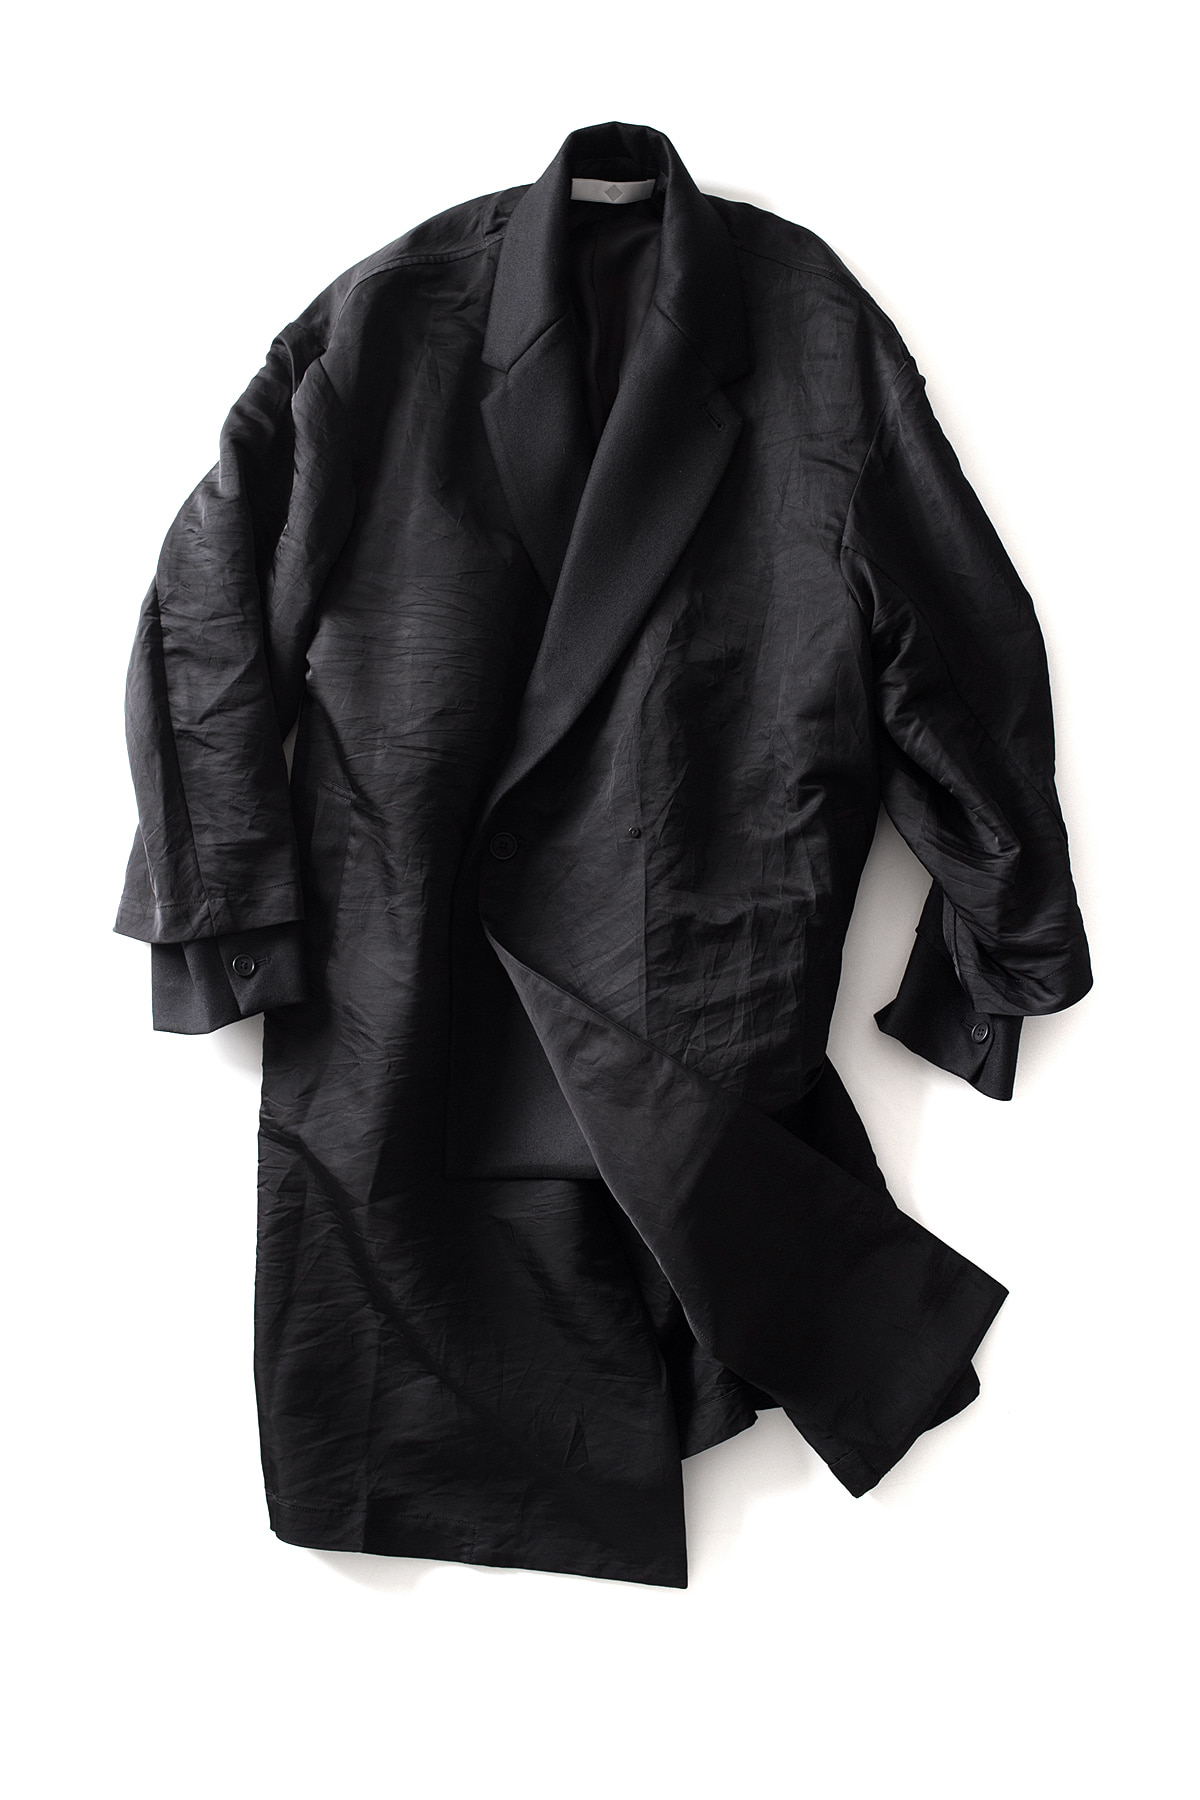 ETHOSENS : Layered Double Breasted Coat (Black)